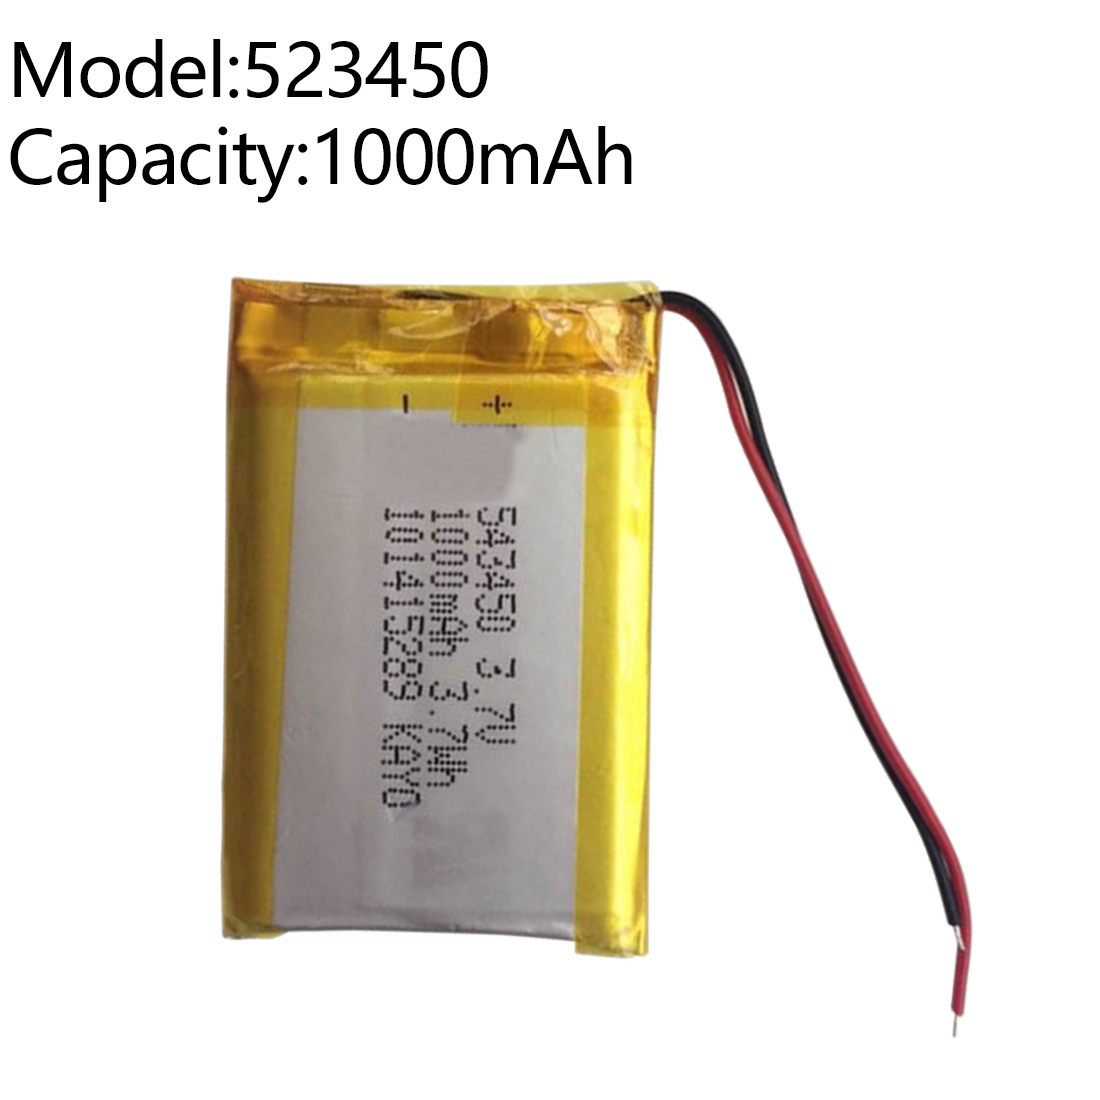 1000 MAh 3.7V Polymer Lithium Rechargeable Battery Li-ion Battery 503450 543450 523450 For Smart Phone DVD MP3 MP4 Led Lamp